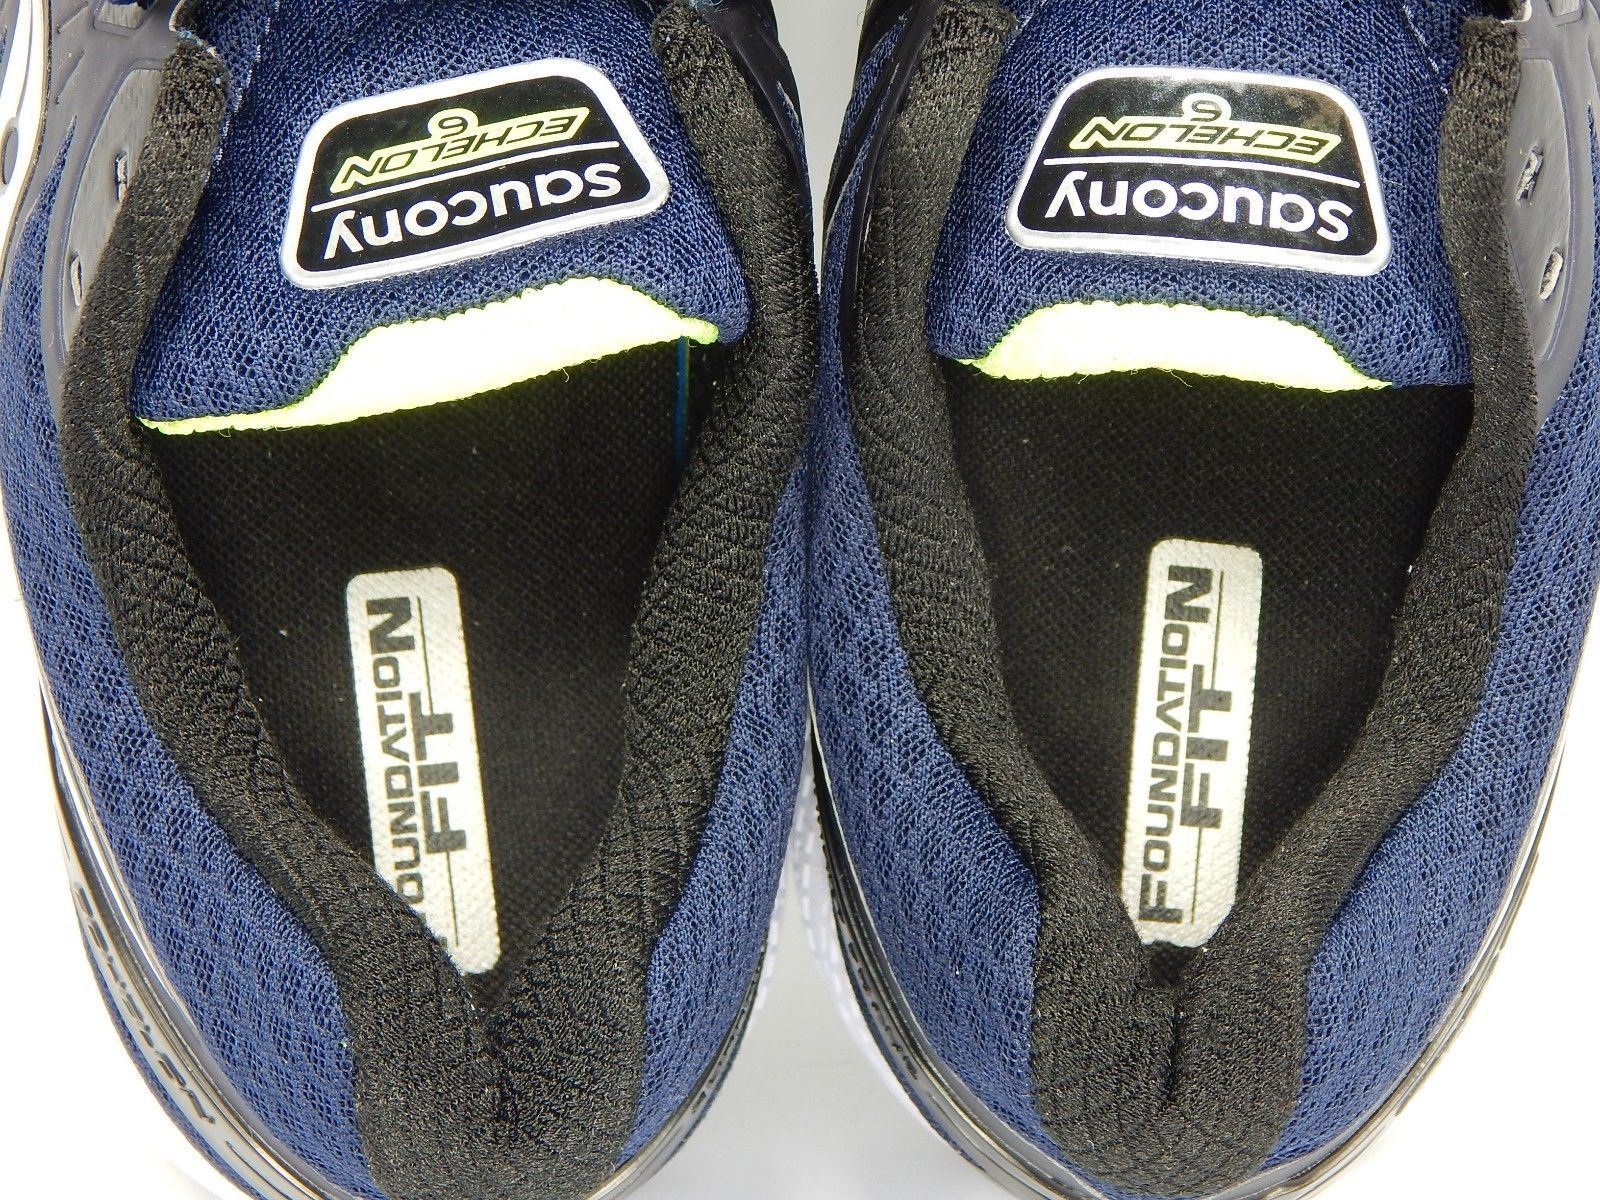 Saucony Echelon 6 Size 10.5 M (D) EU 44.5 Men's Running Shoes Blue S20384-1